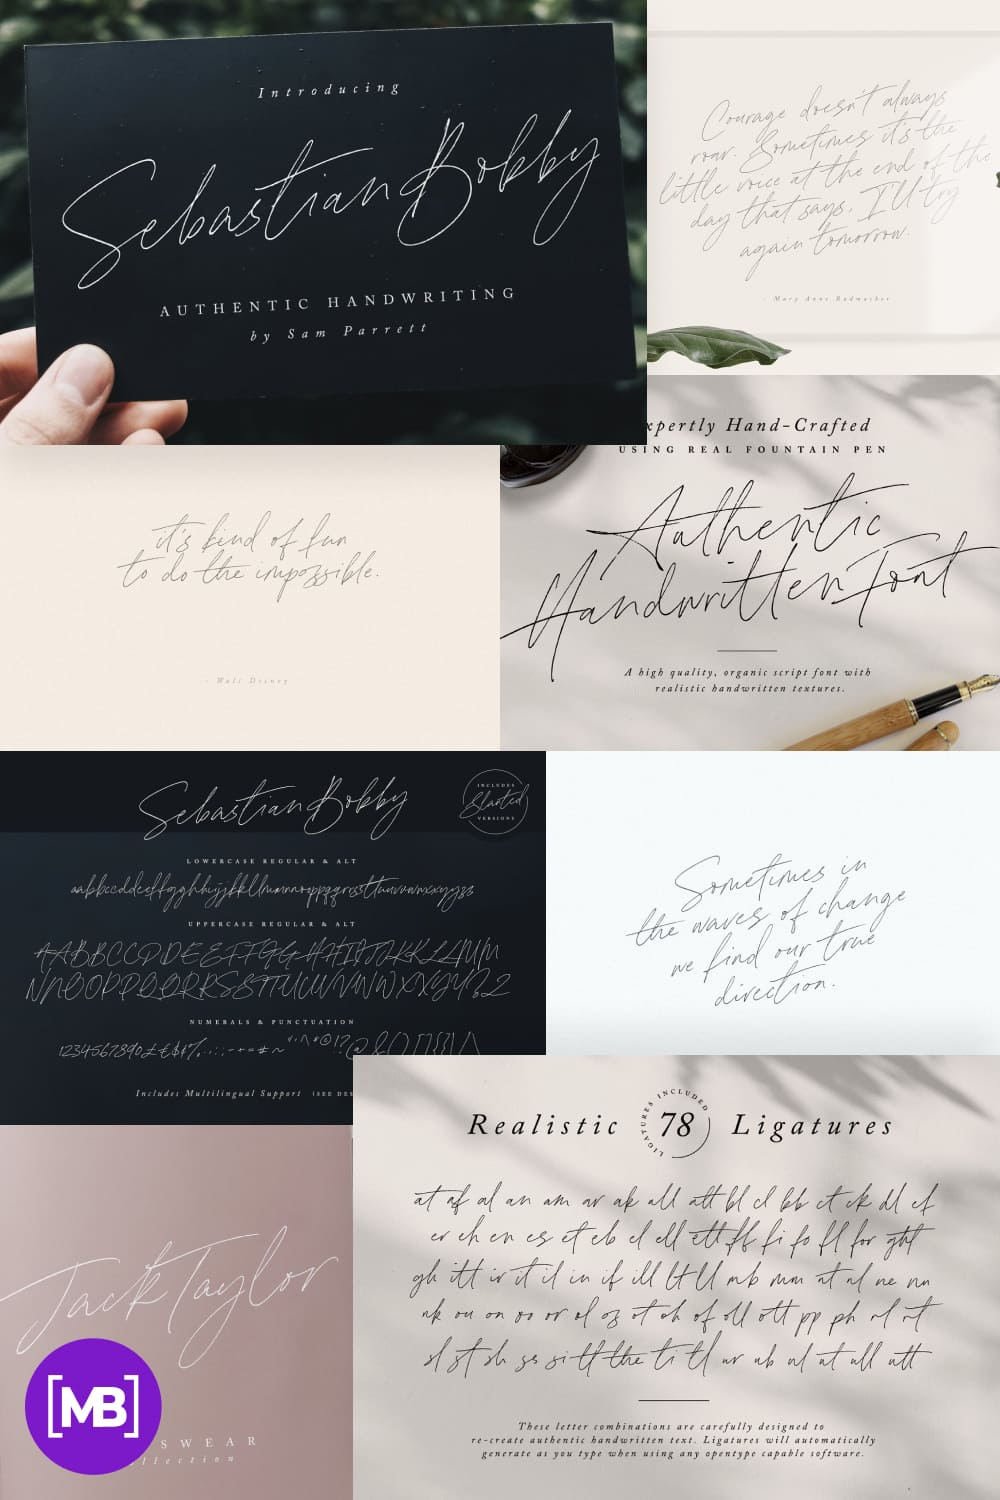 An authentic & organic hand-drawn script font, crafted using a real fountain pen. This font has been carefully designed to re-create natural handwritten text.